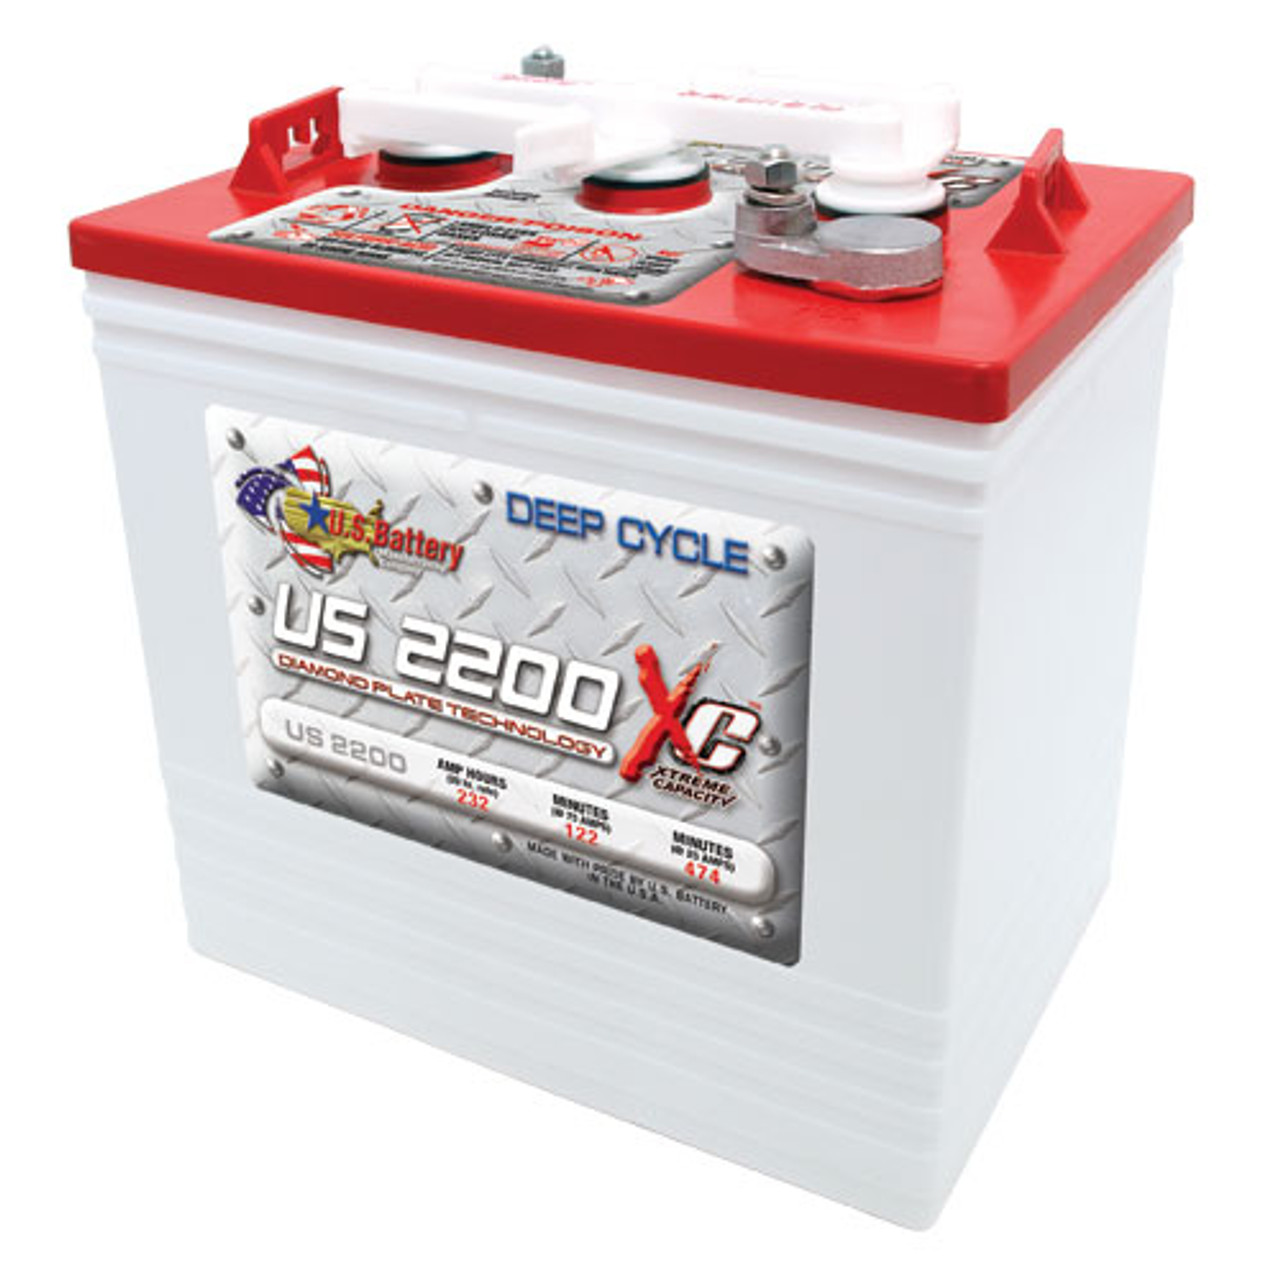 US Battery US2200XC 6V Deep Cycle Battery